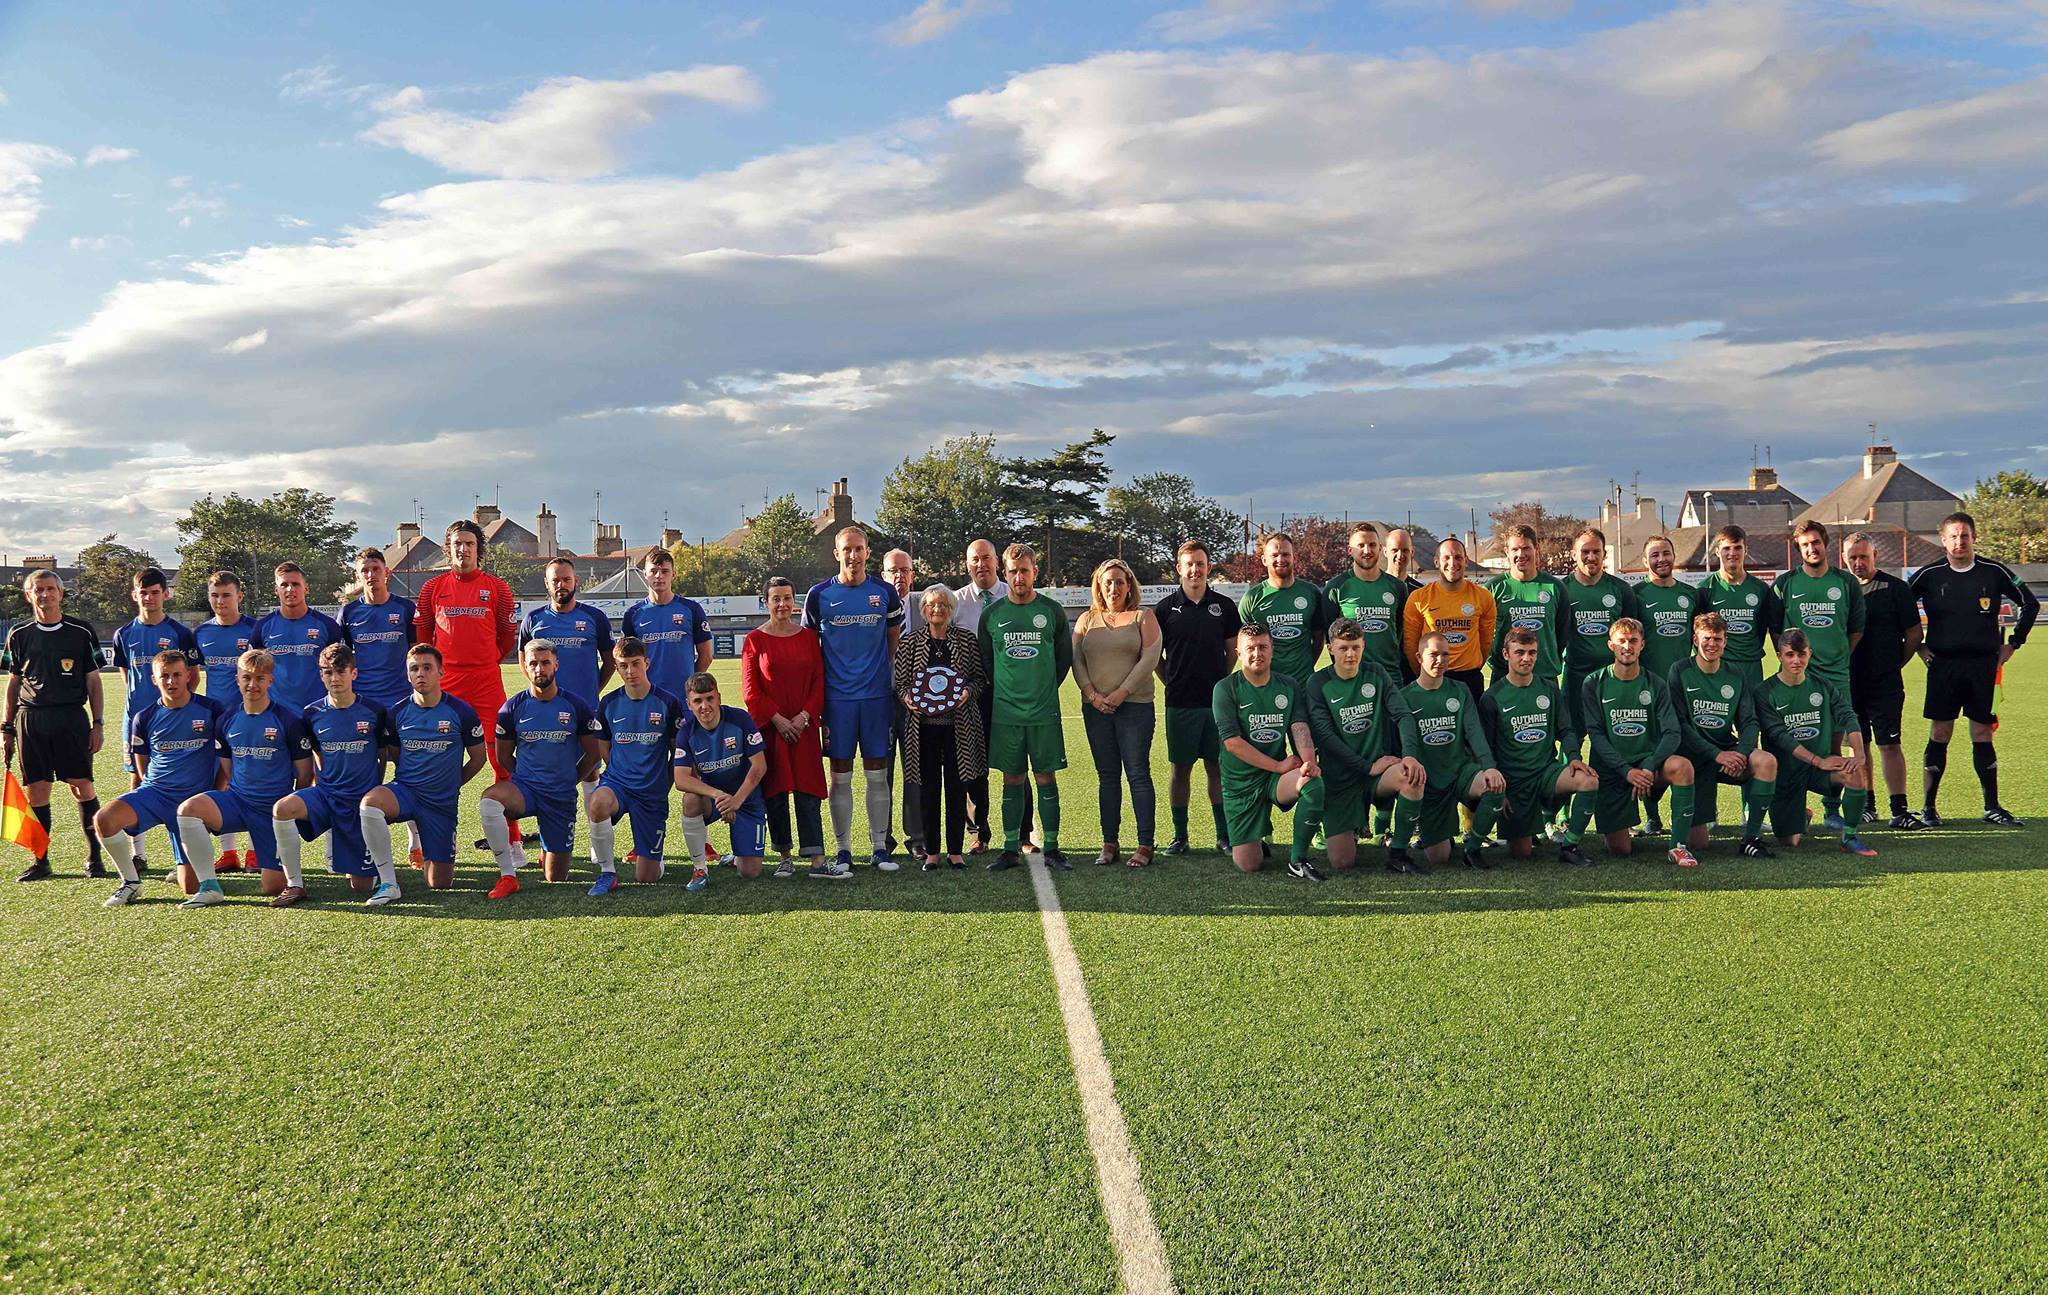 The teams before the match